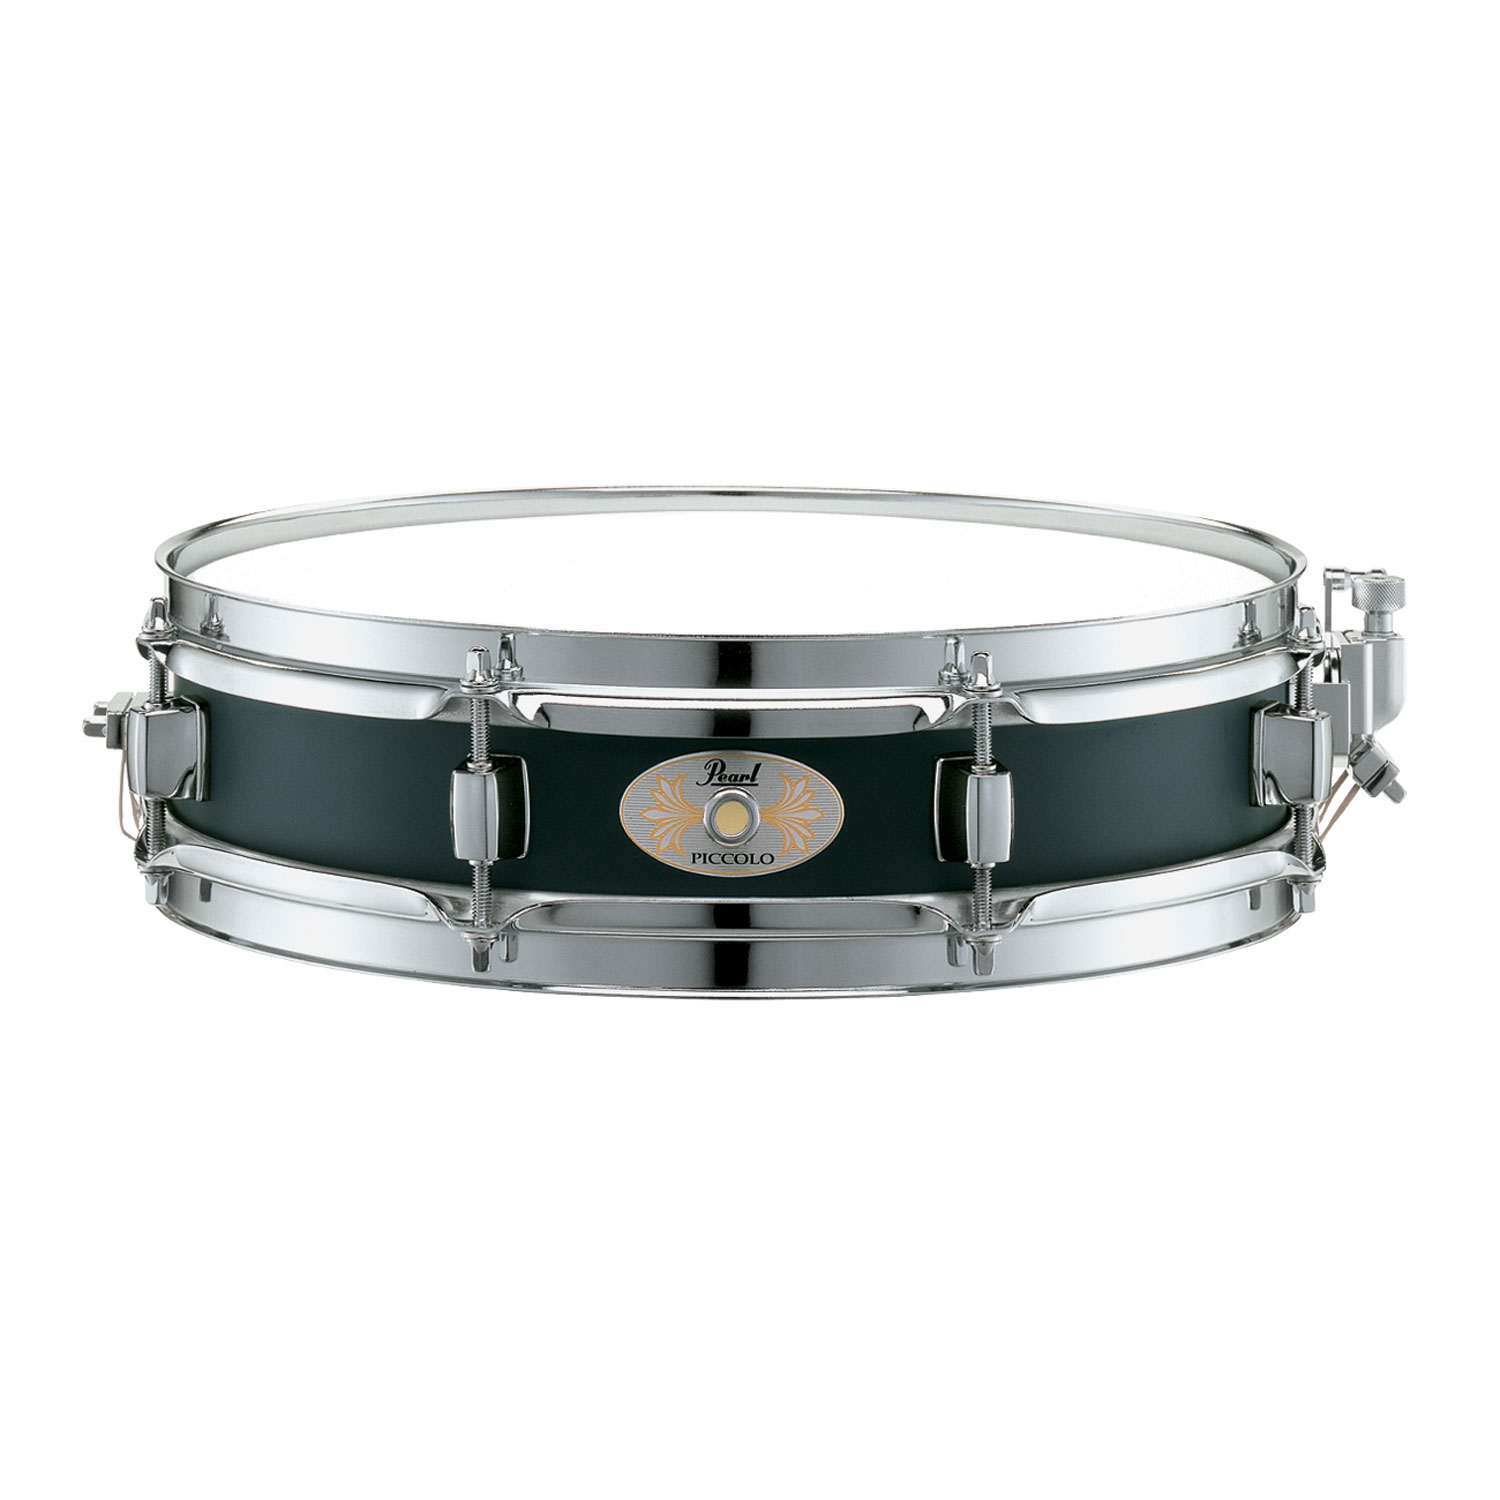 "Pearl 13"" x 3"" Steel Piccolo Snare Drum"